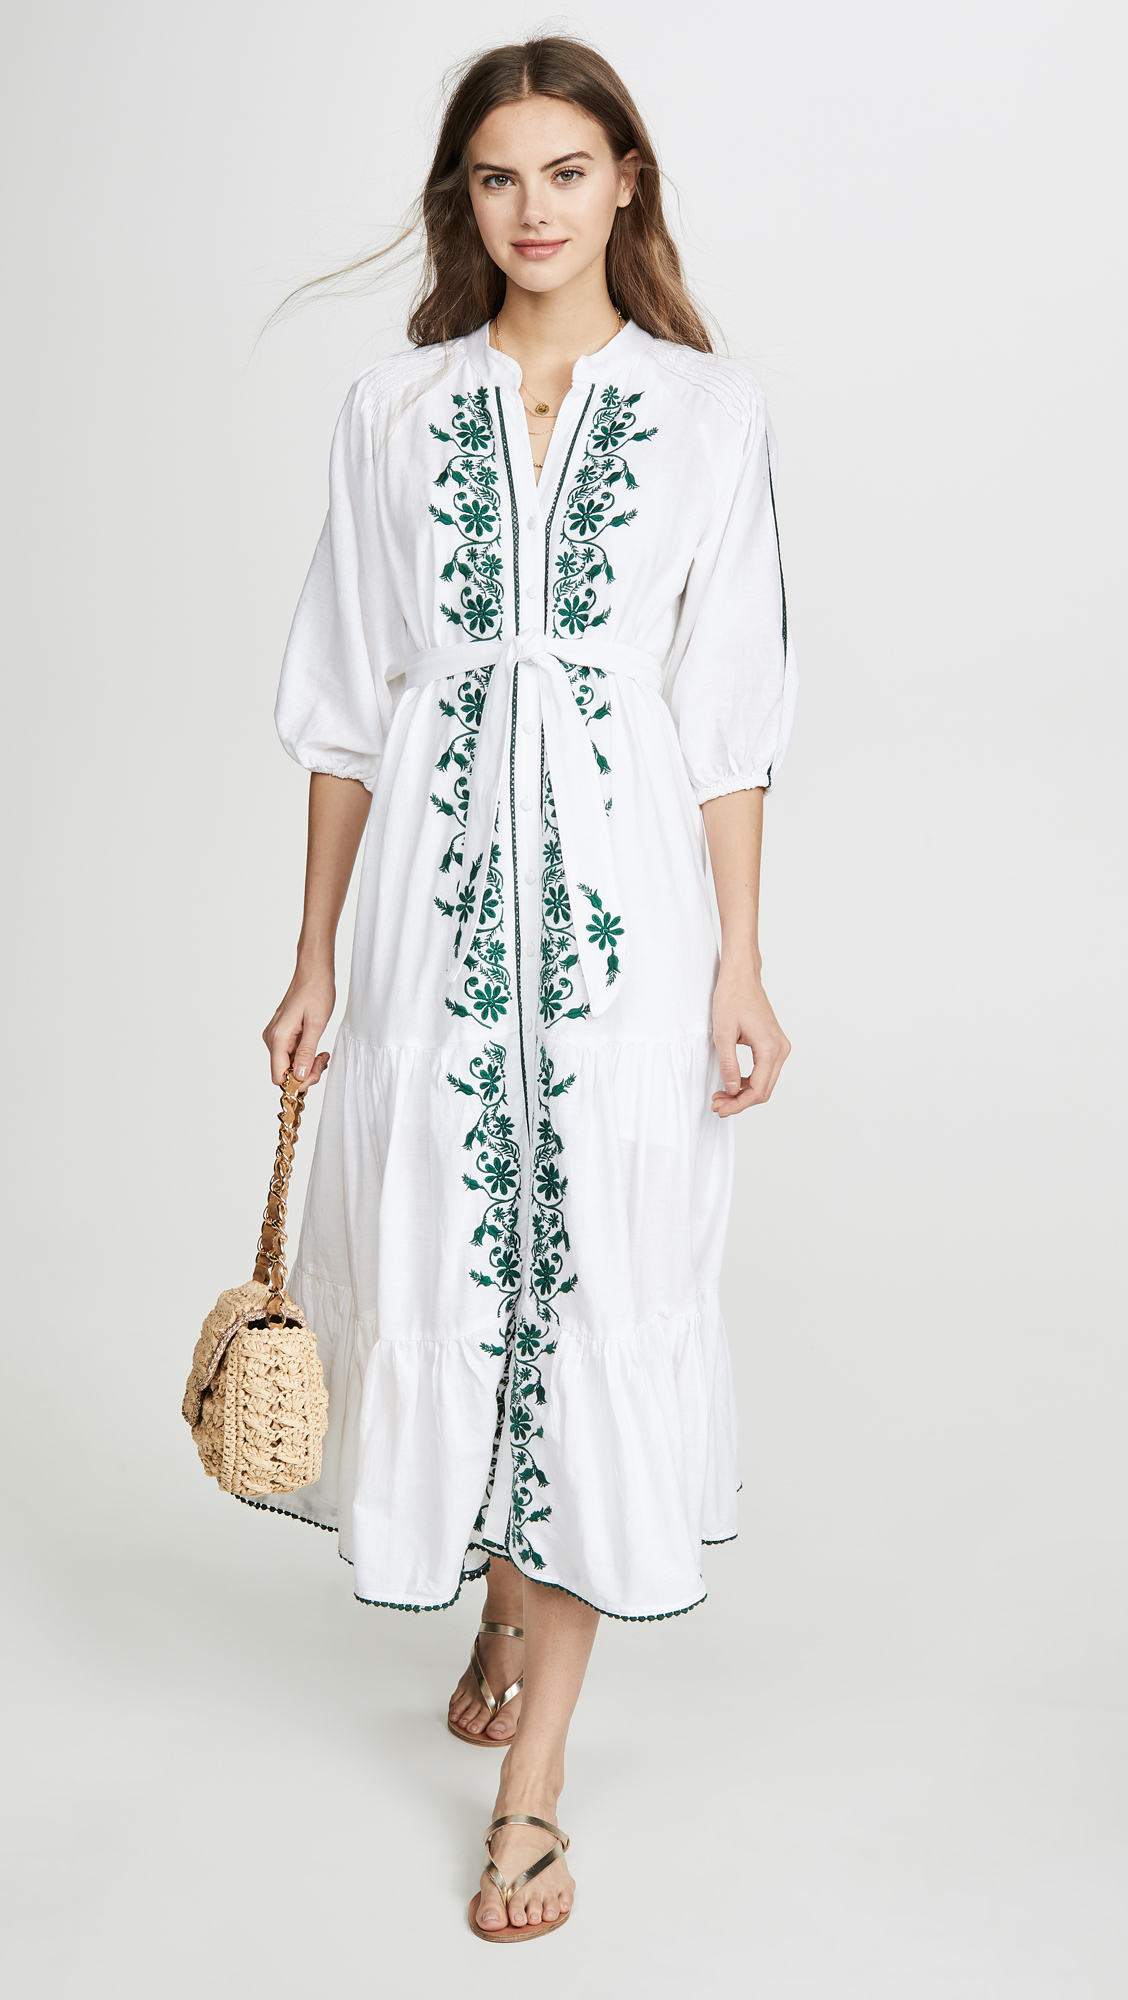 Green Floral Embroidered Maxi Dress